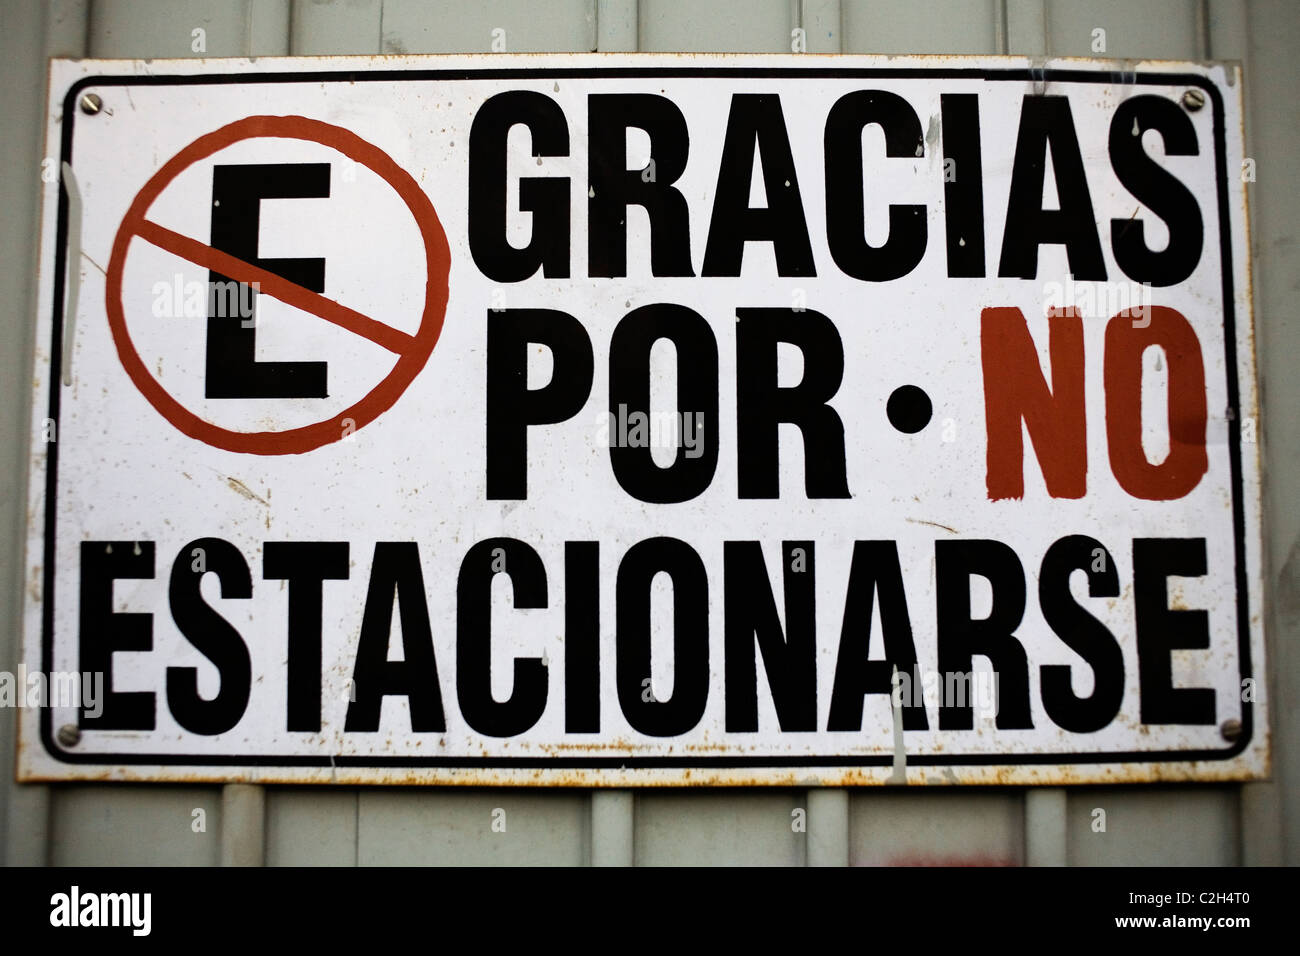 No parking sign in the Spanish language. - Stock Image